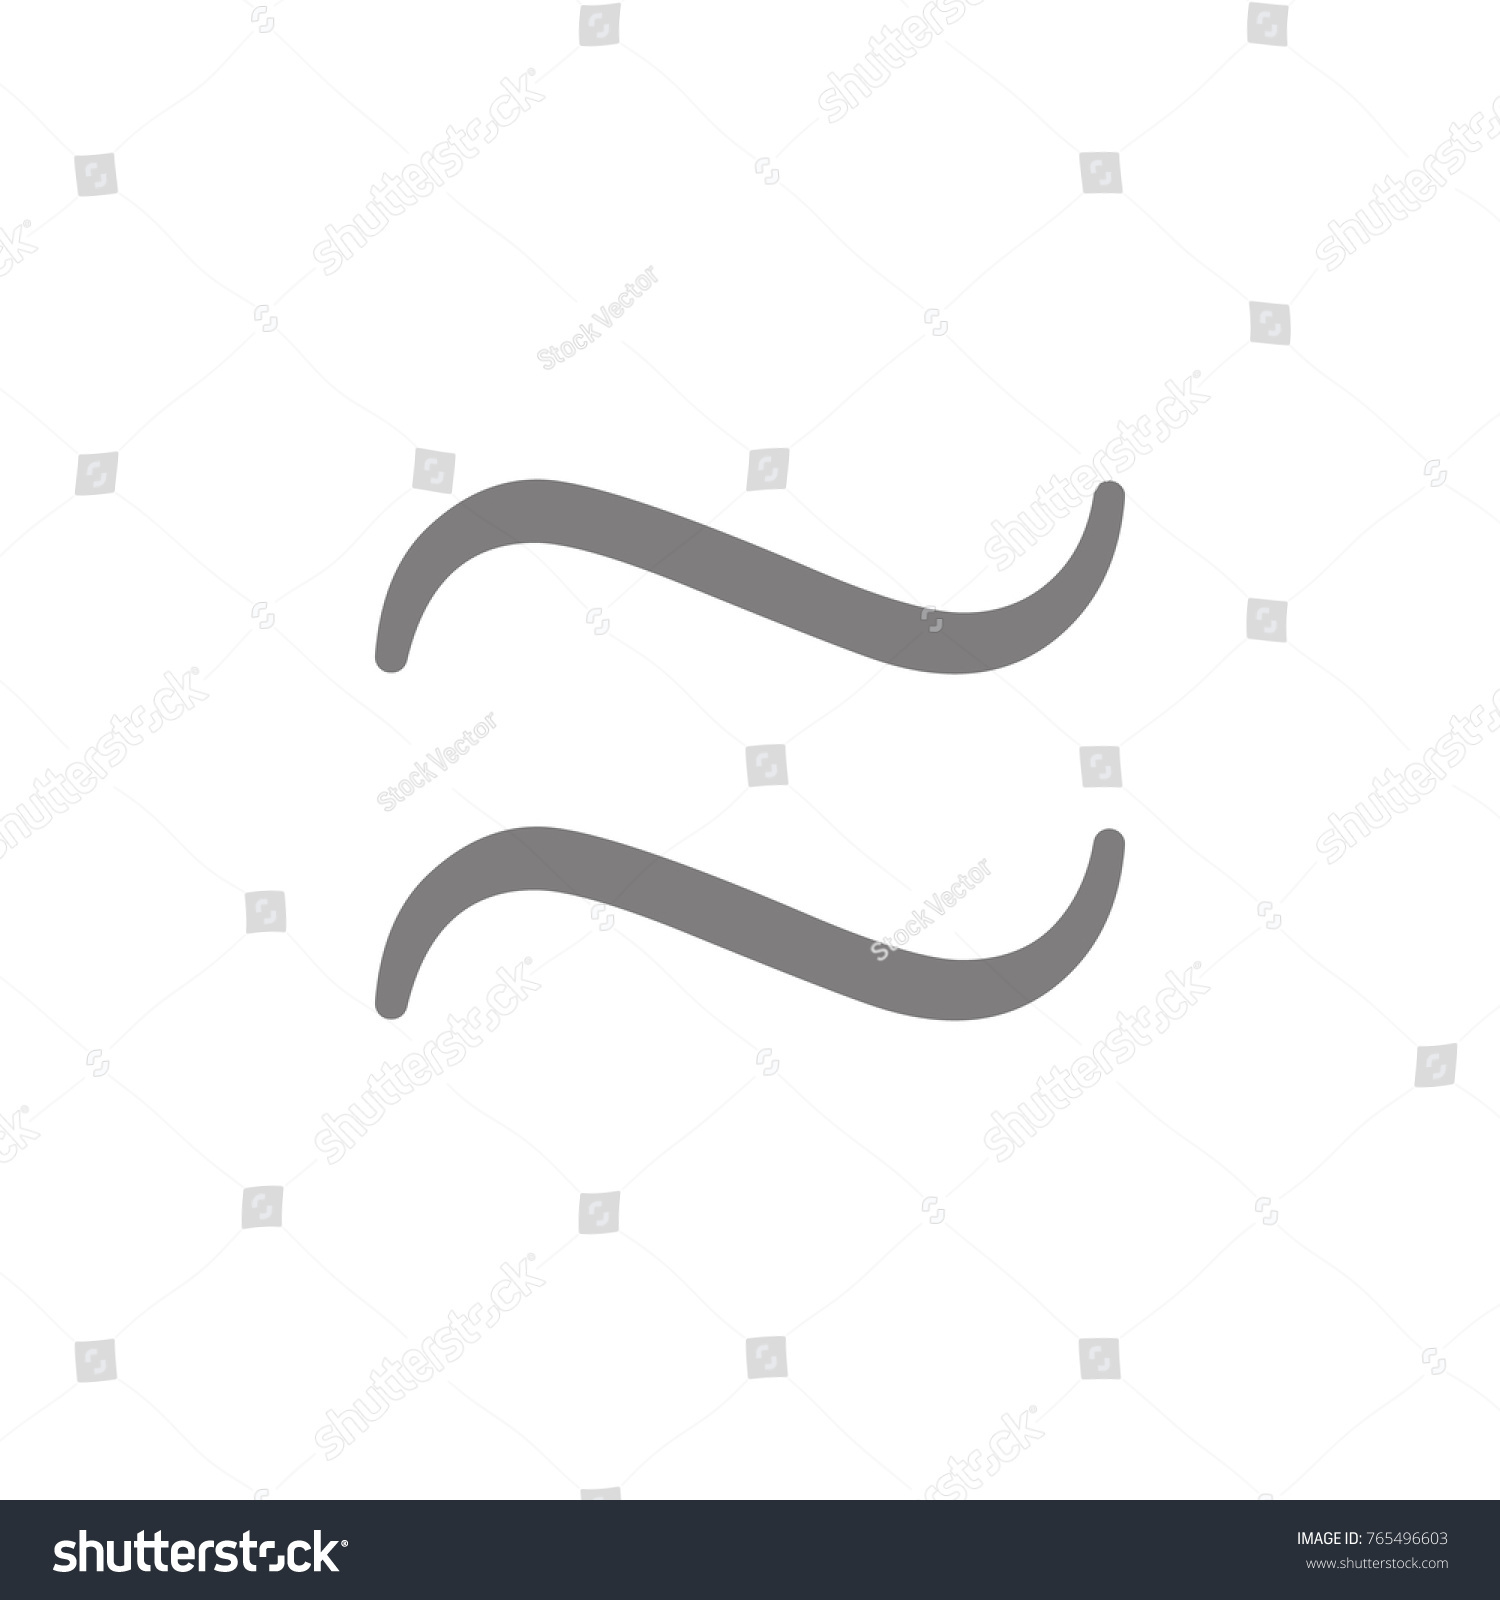 Approximately Equal Symbol Icon Web Element Stock Illustration